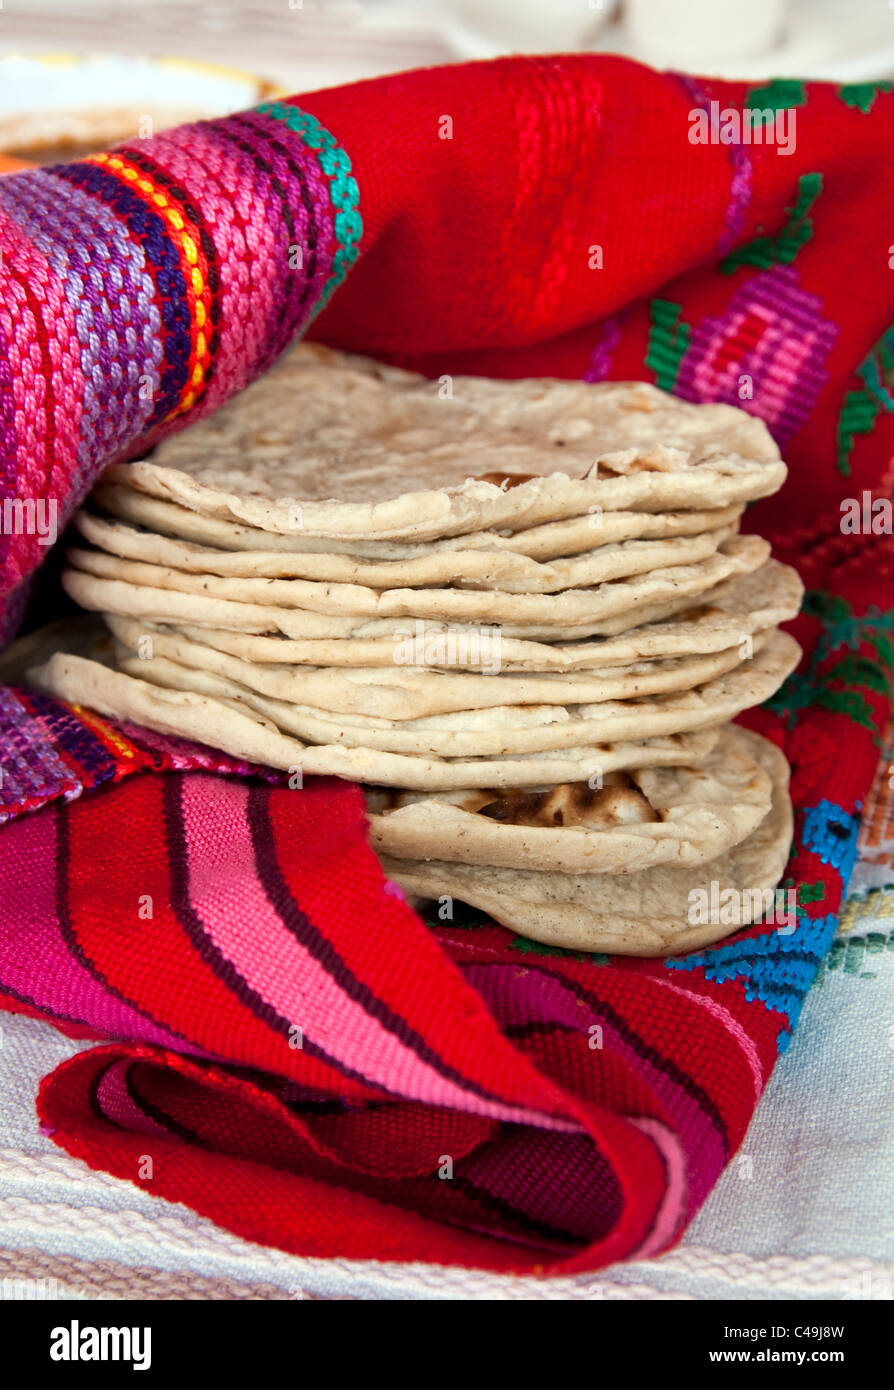 Home-made from scratch traditional Maya-style Guatemalan corn tortillas are fluffy and cake-like. - Stock Image